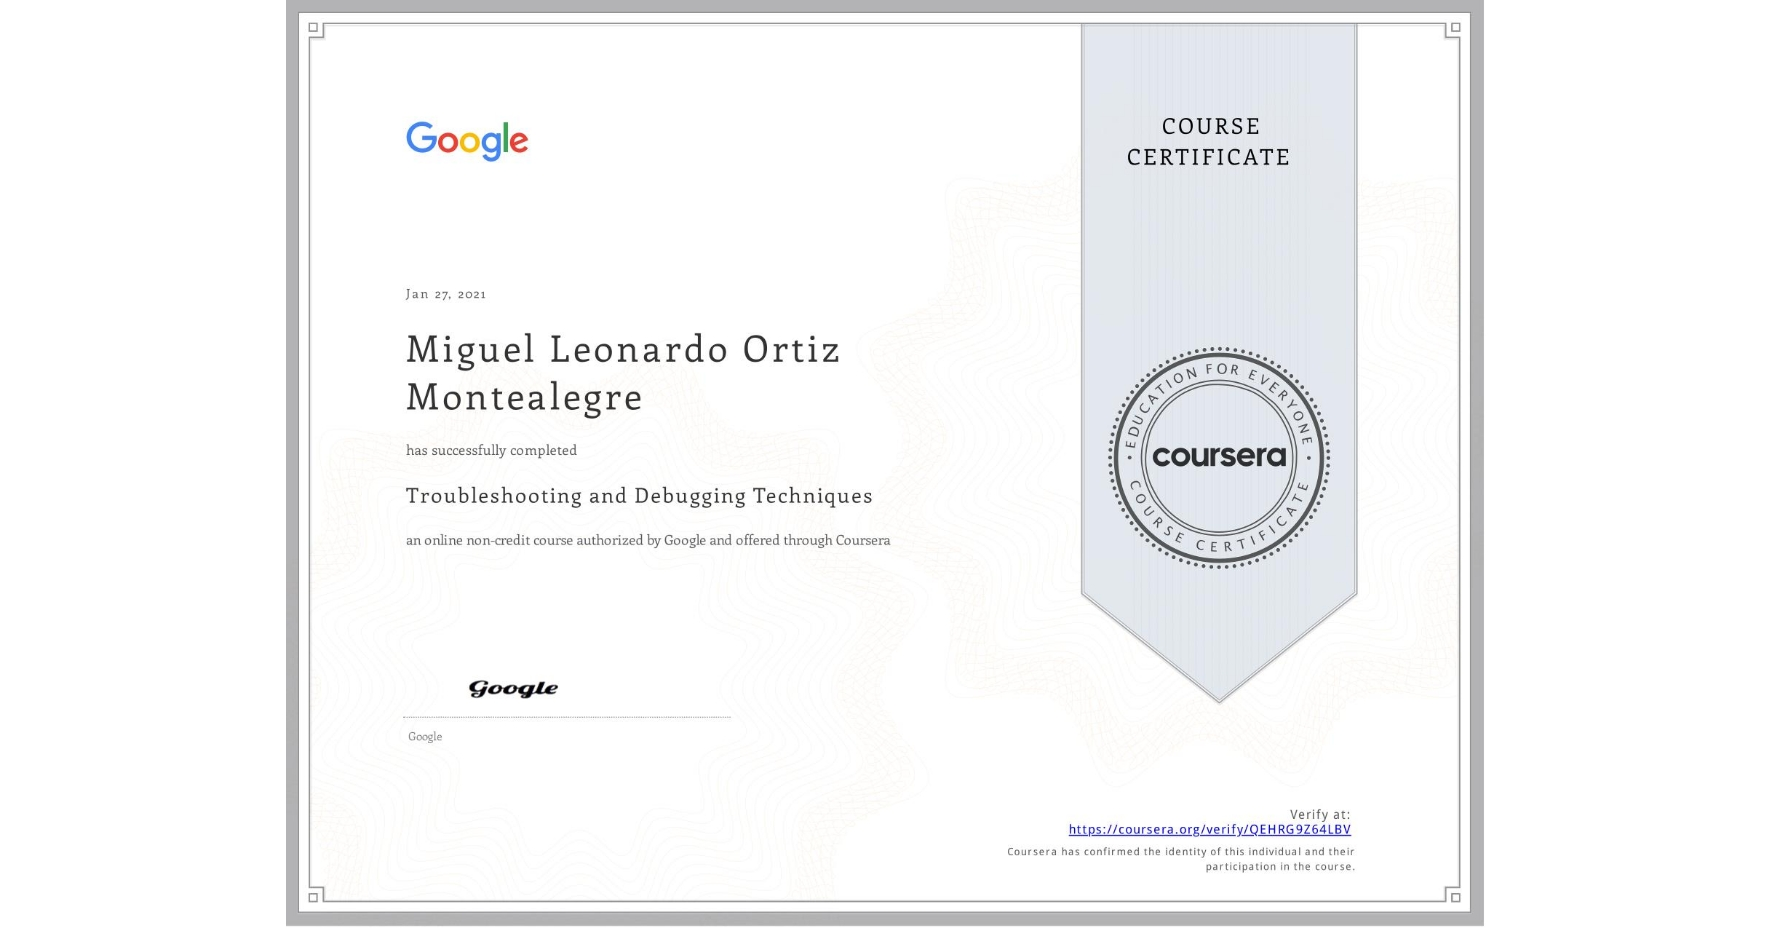 View certificate for Miguel Leonardo Ortiz Montealegre, Troubleshooting and Debugging Techniques, an online non-credit course authorized by Google and offered through Coursera